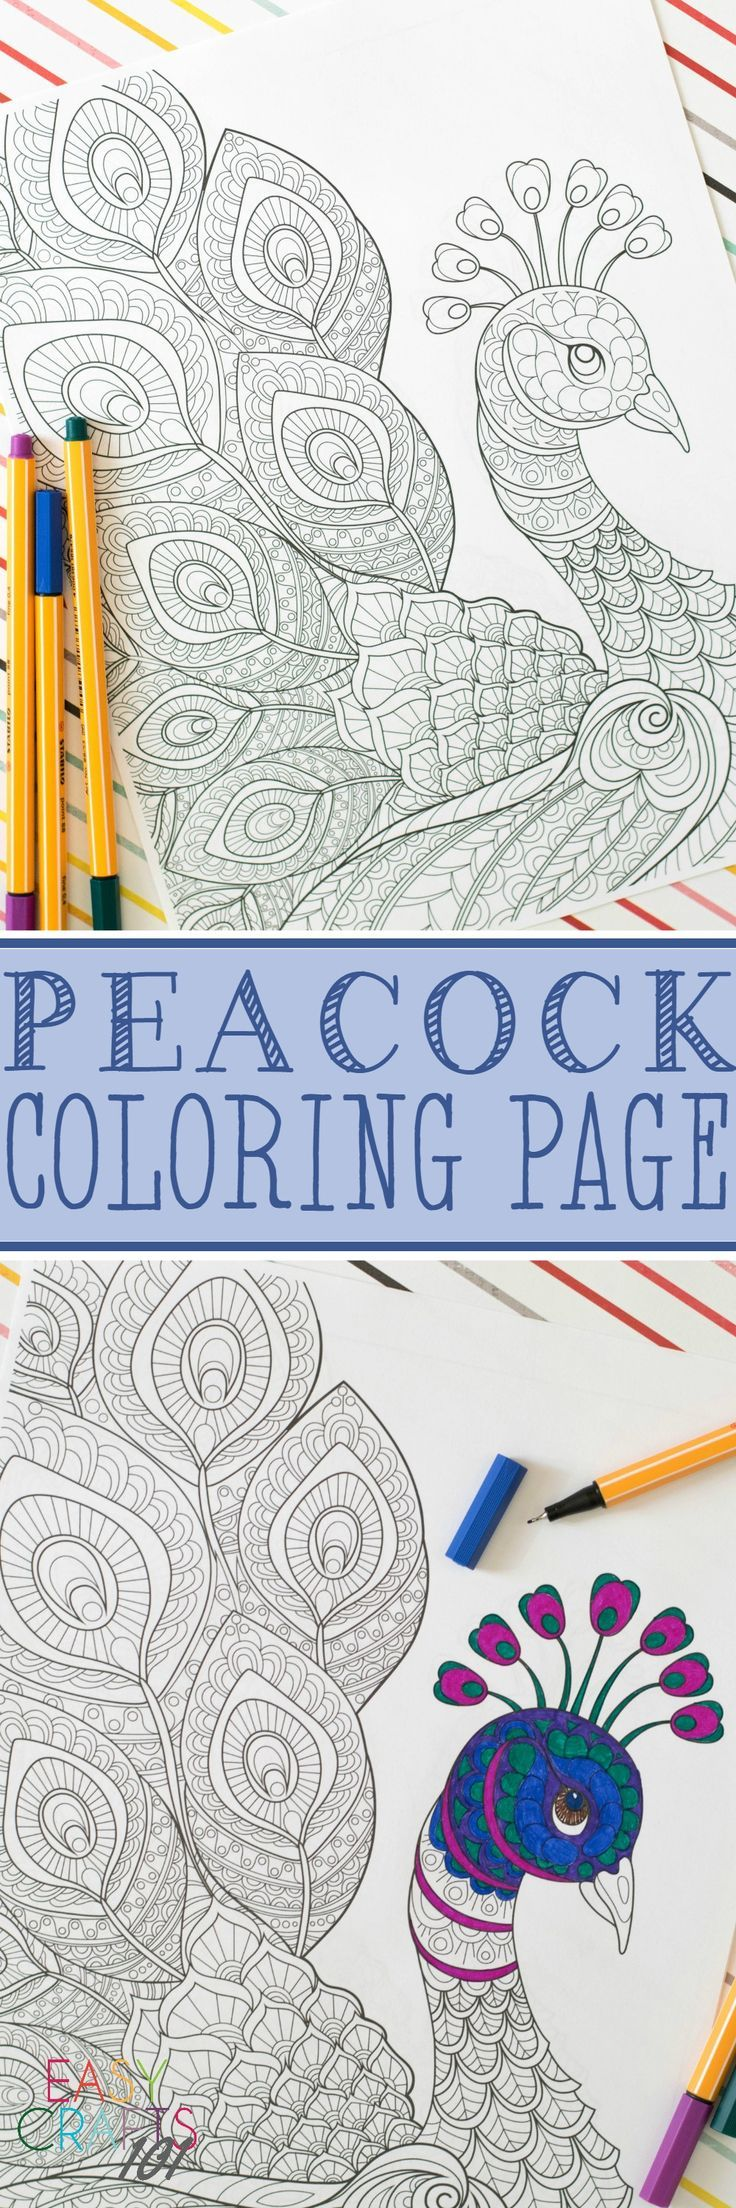 17 best images about coloring pages on pinterest neon for Peacock crafts for adults